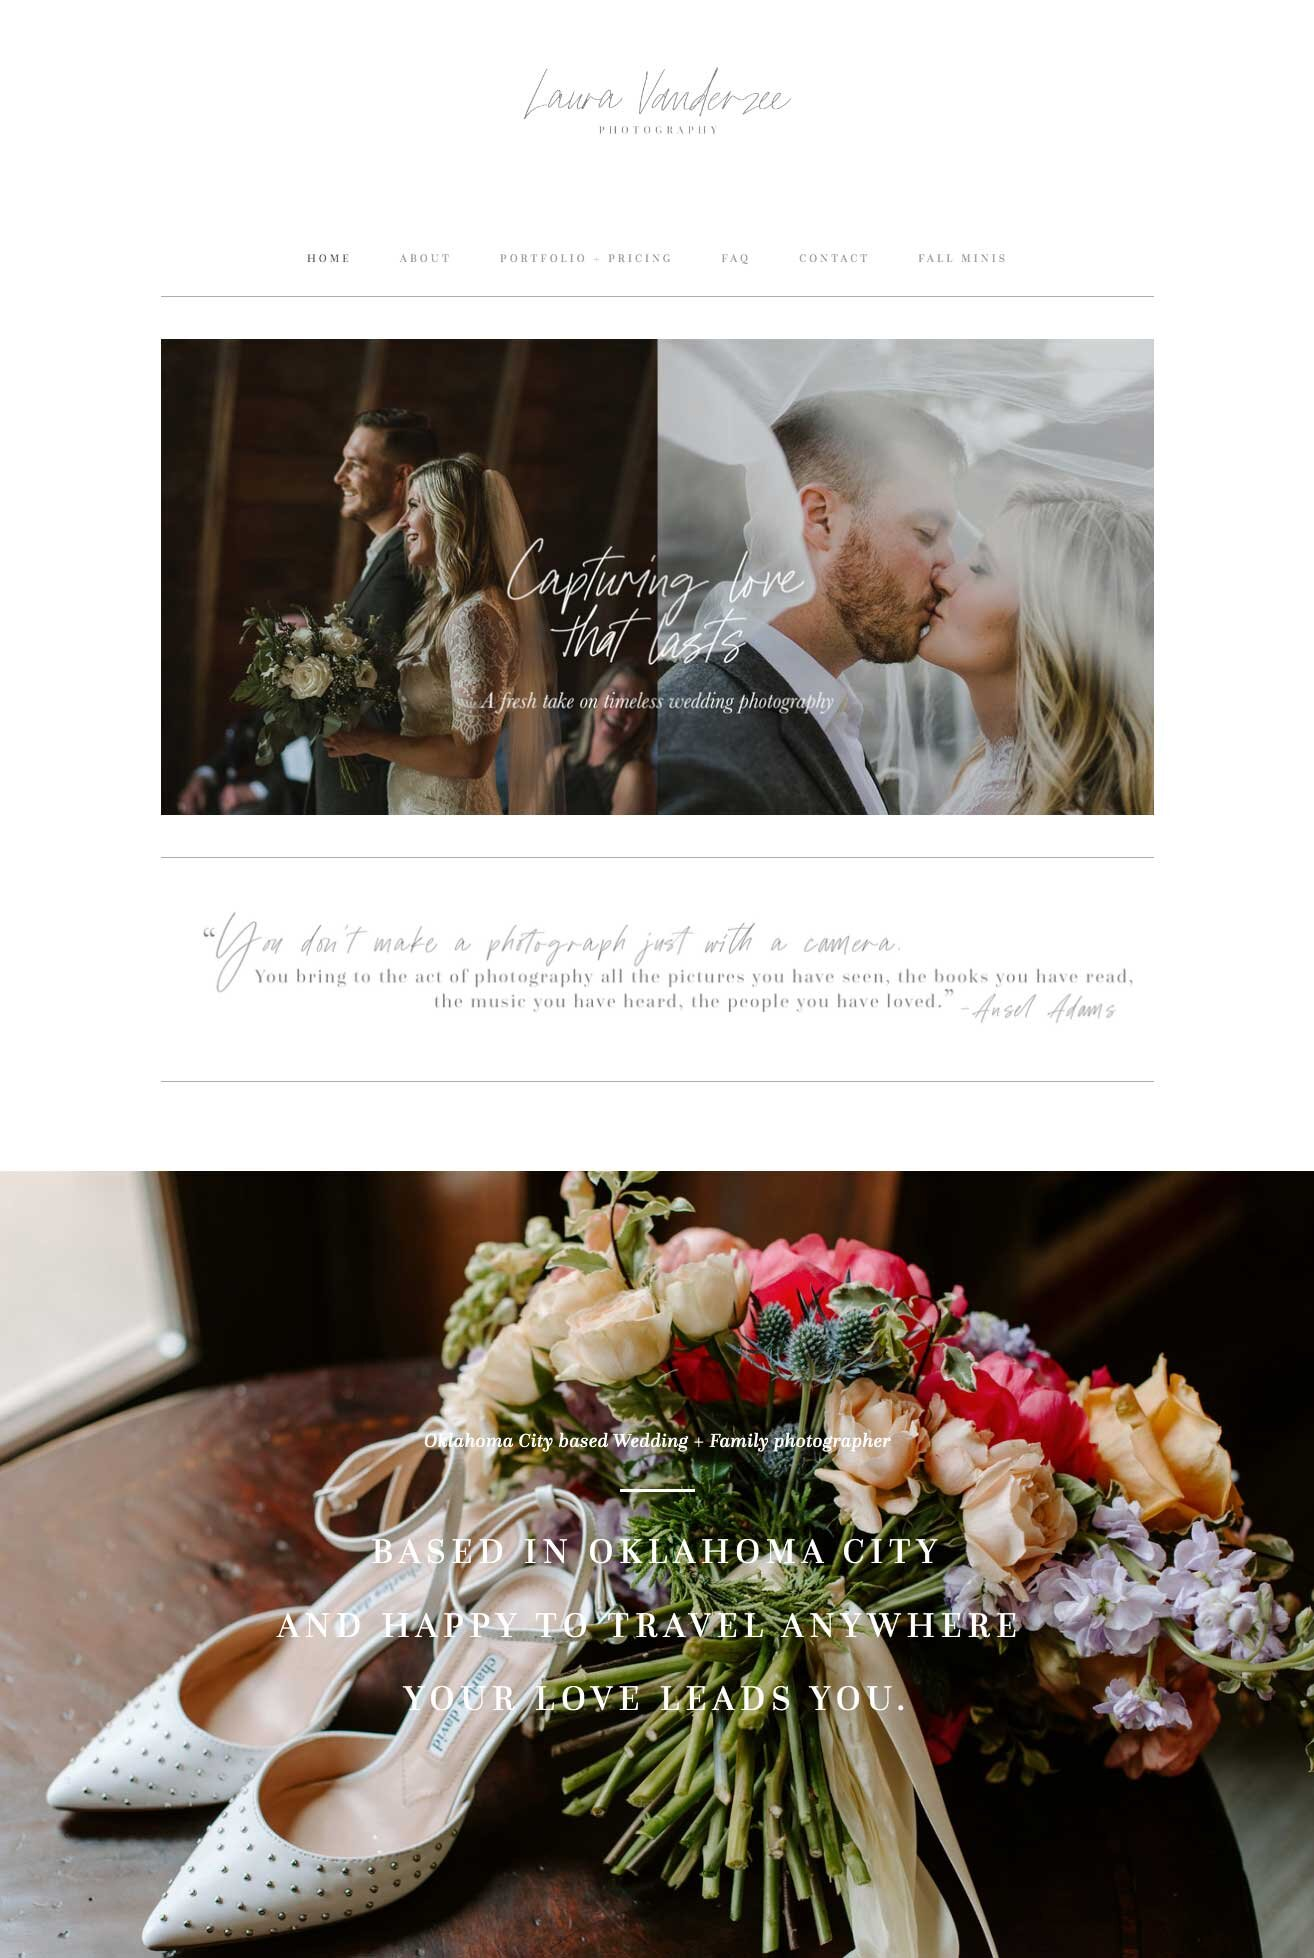 Squarespace Inspirational Website for Photographers.